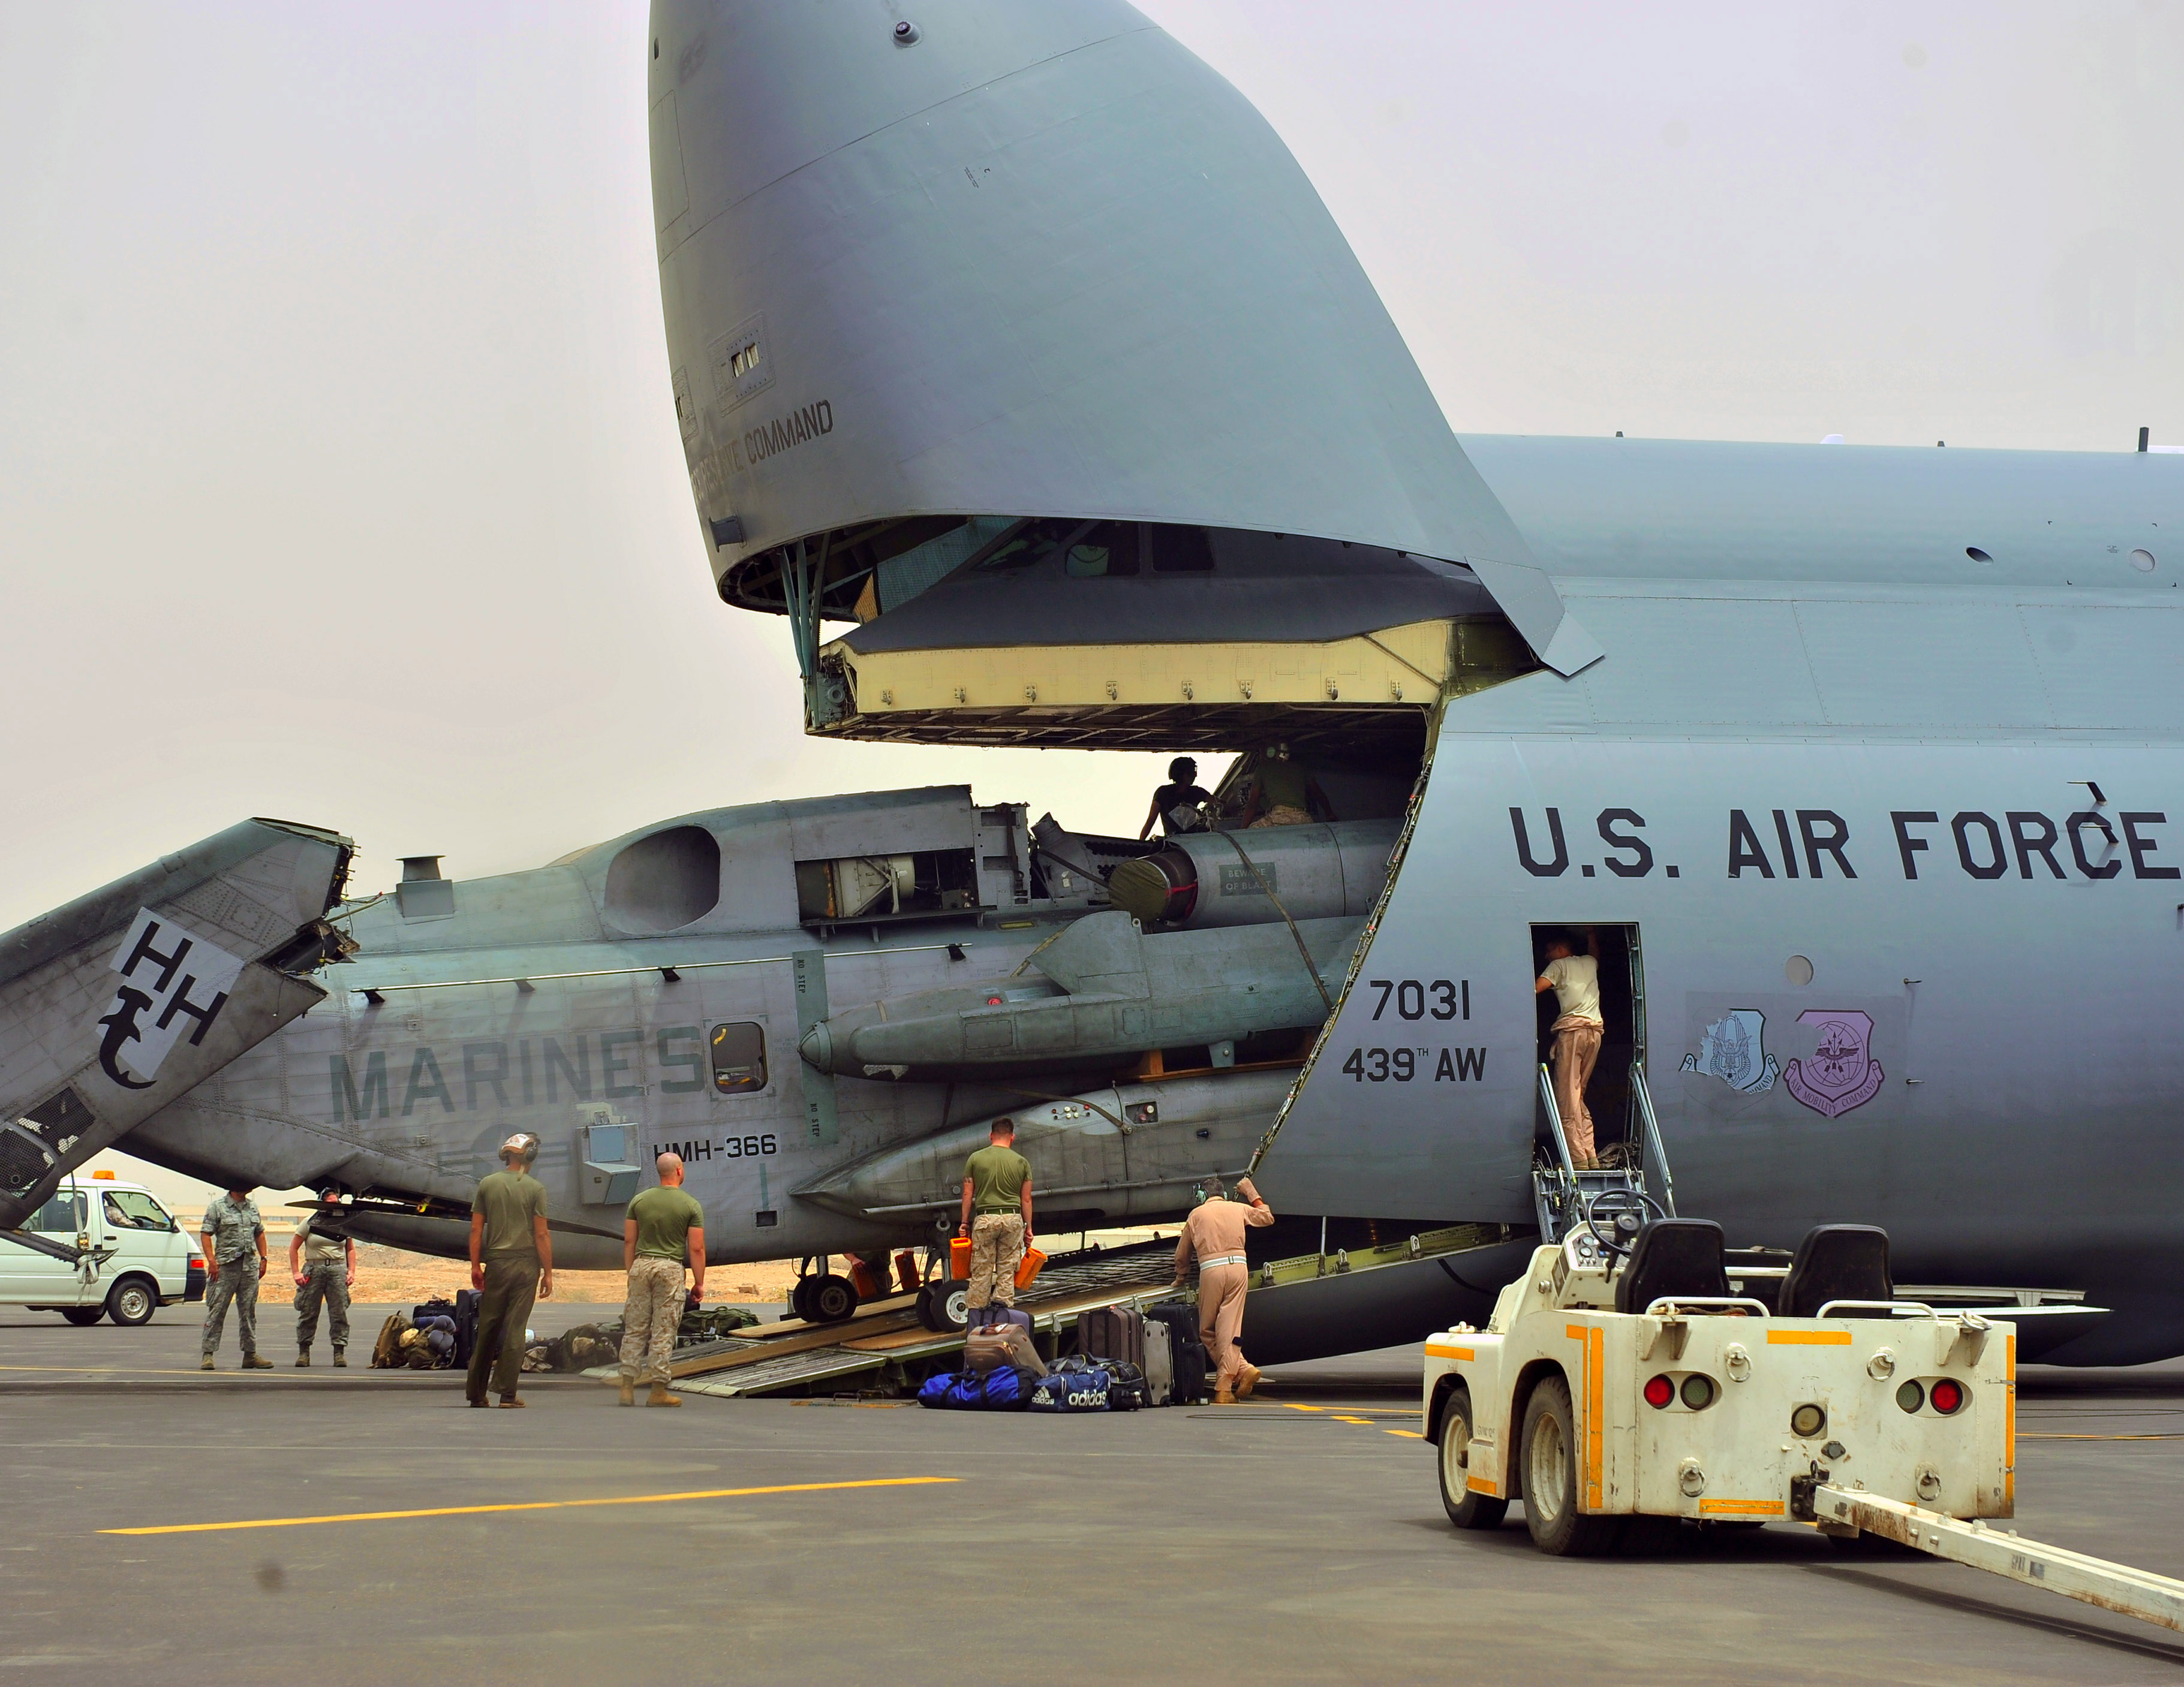 Djibouti: US military resumes air operations after suspension - East ...